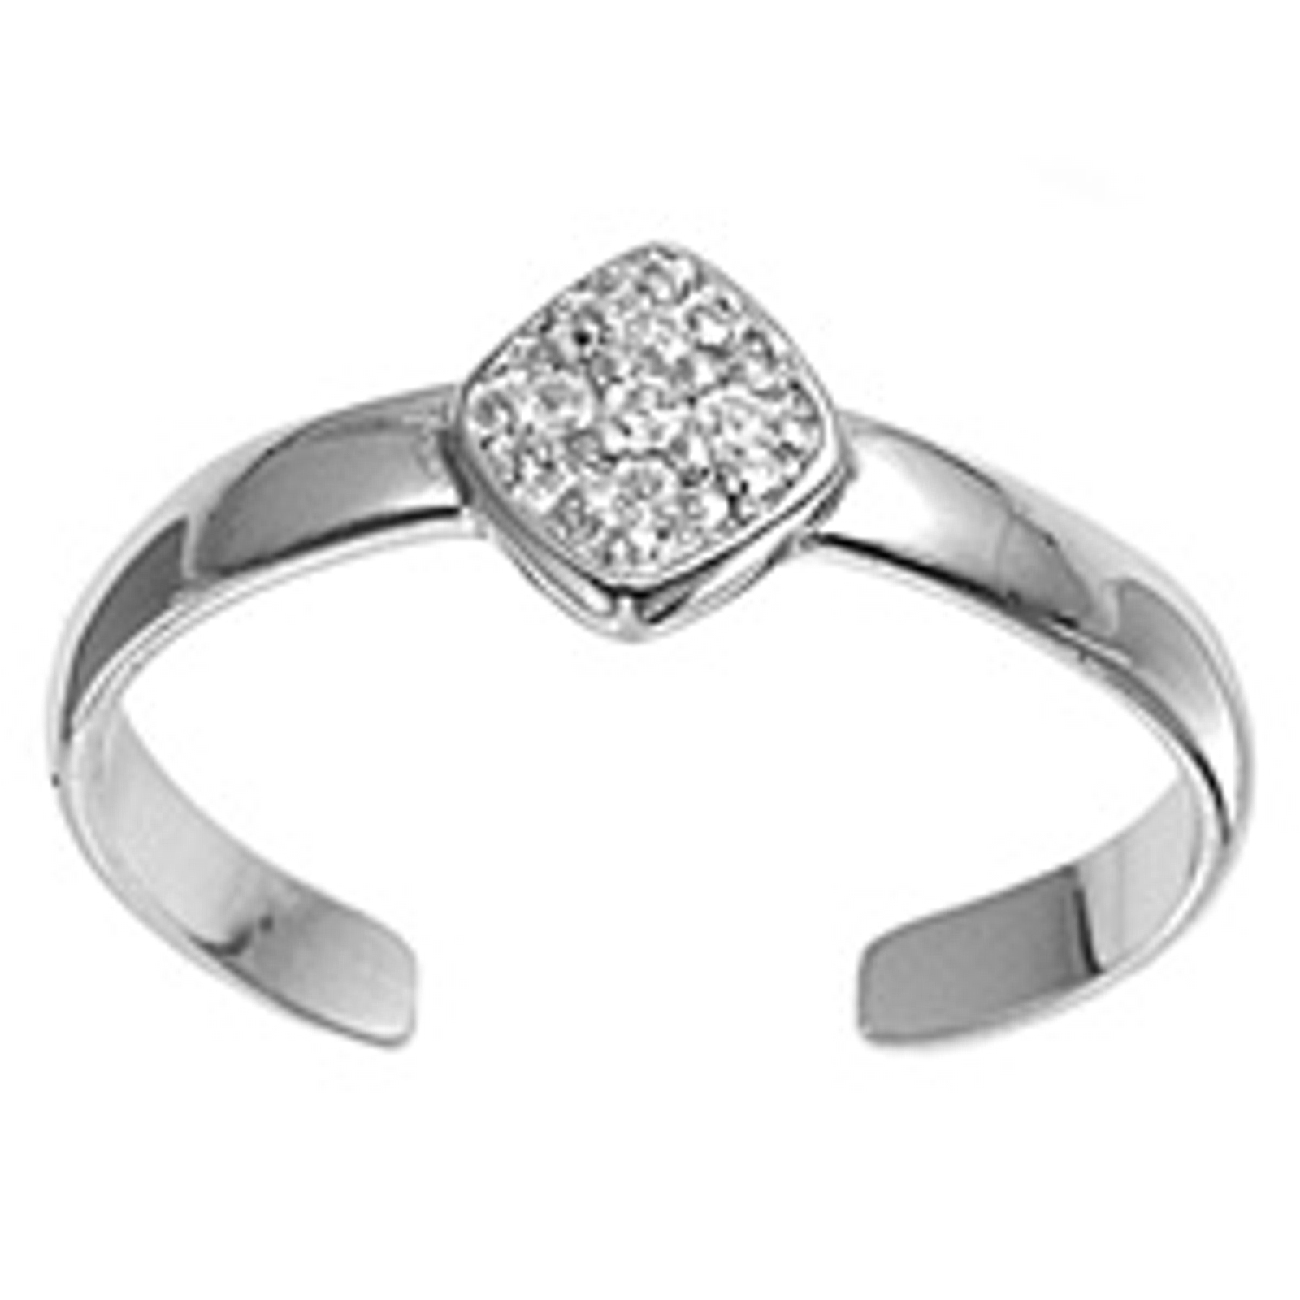 Clear Cubic Zirconia Diamond Shape Adjustable Toe Ring